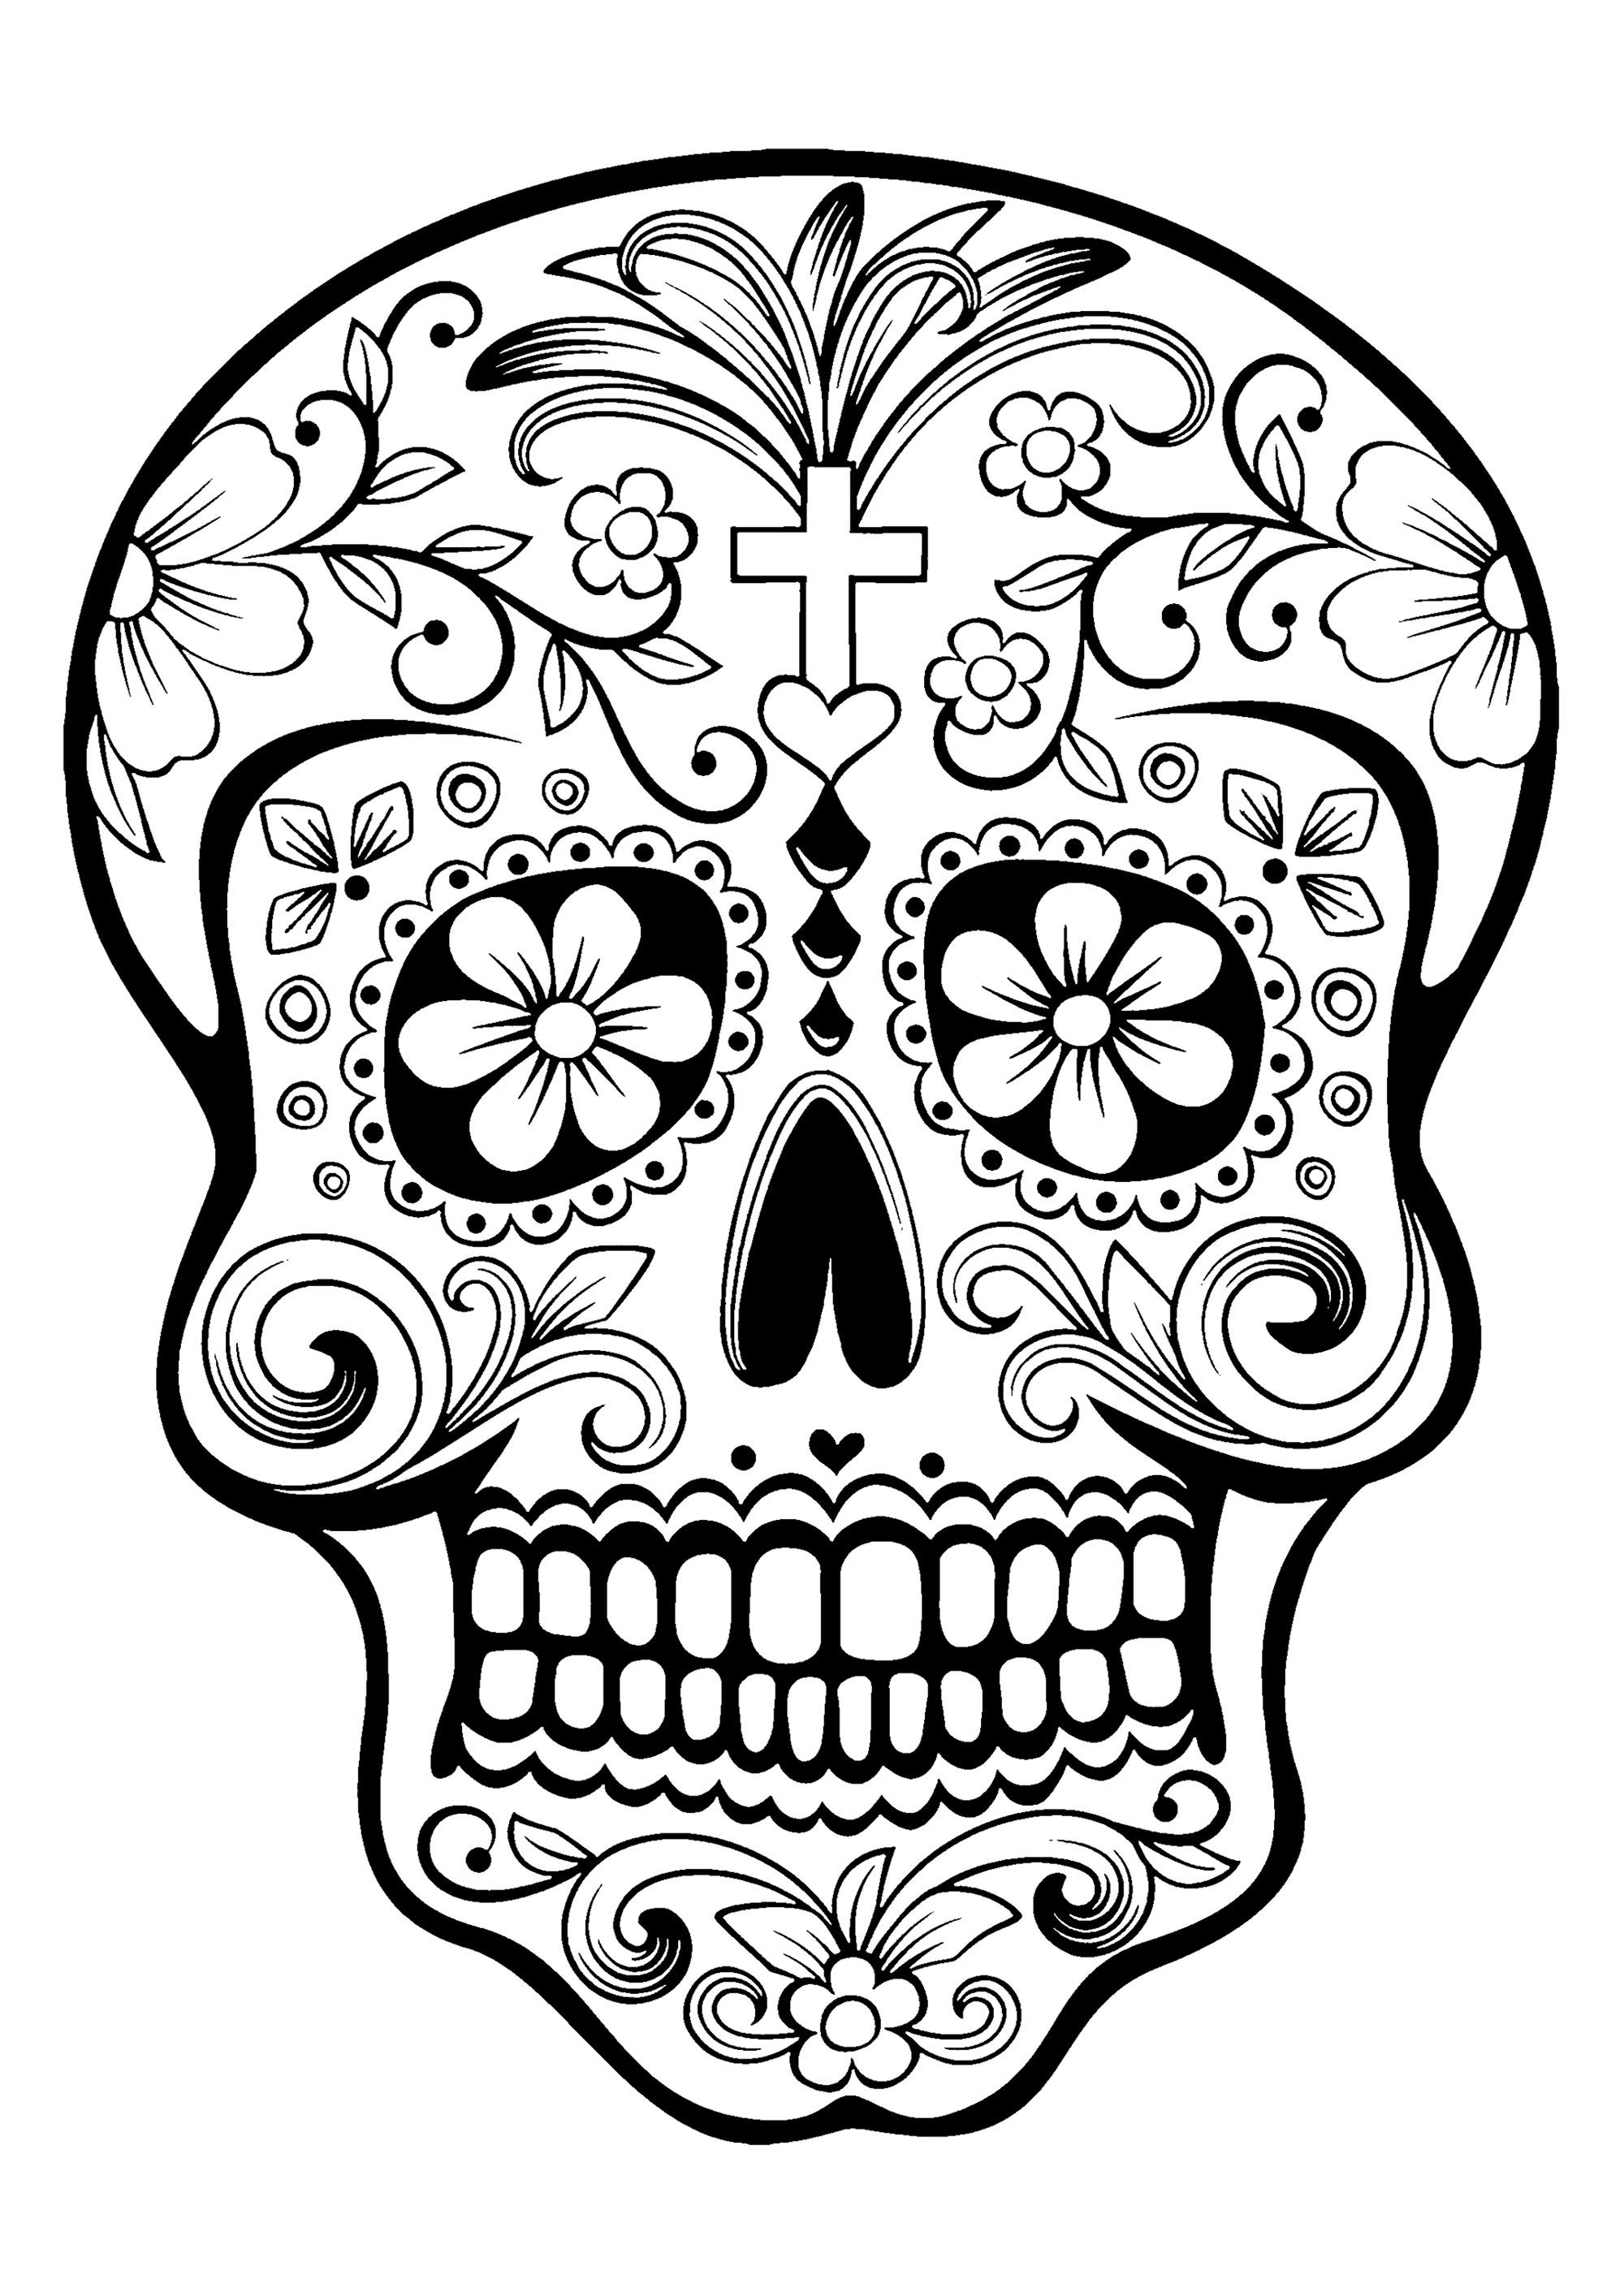 day of the dead skulls coloring pages day of the dead coloring pages getcoloringpagescom coloring of pages dead skulls the day